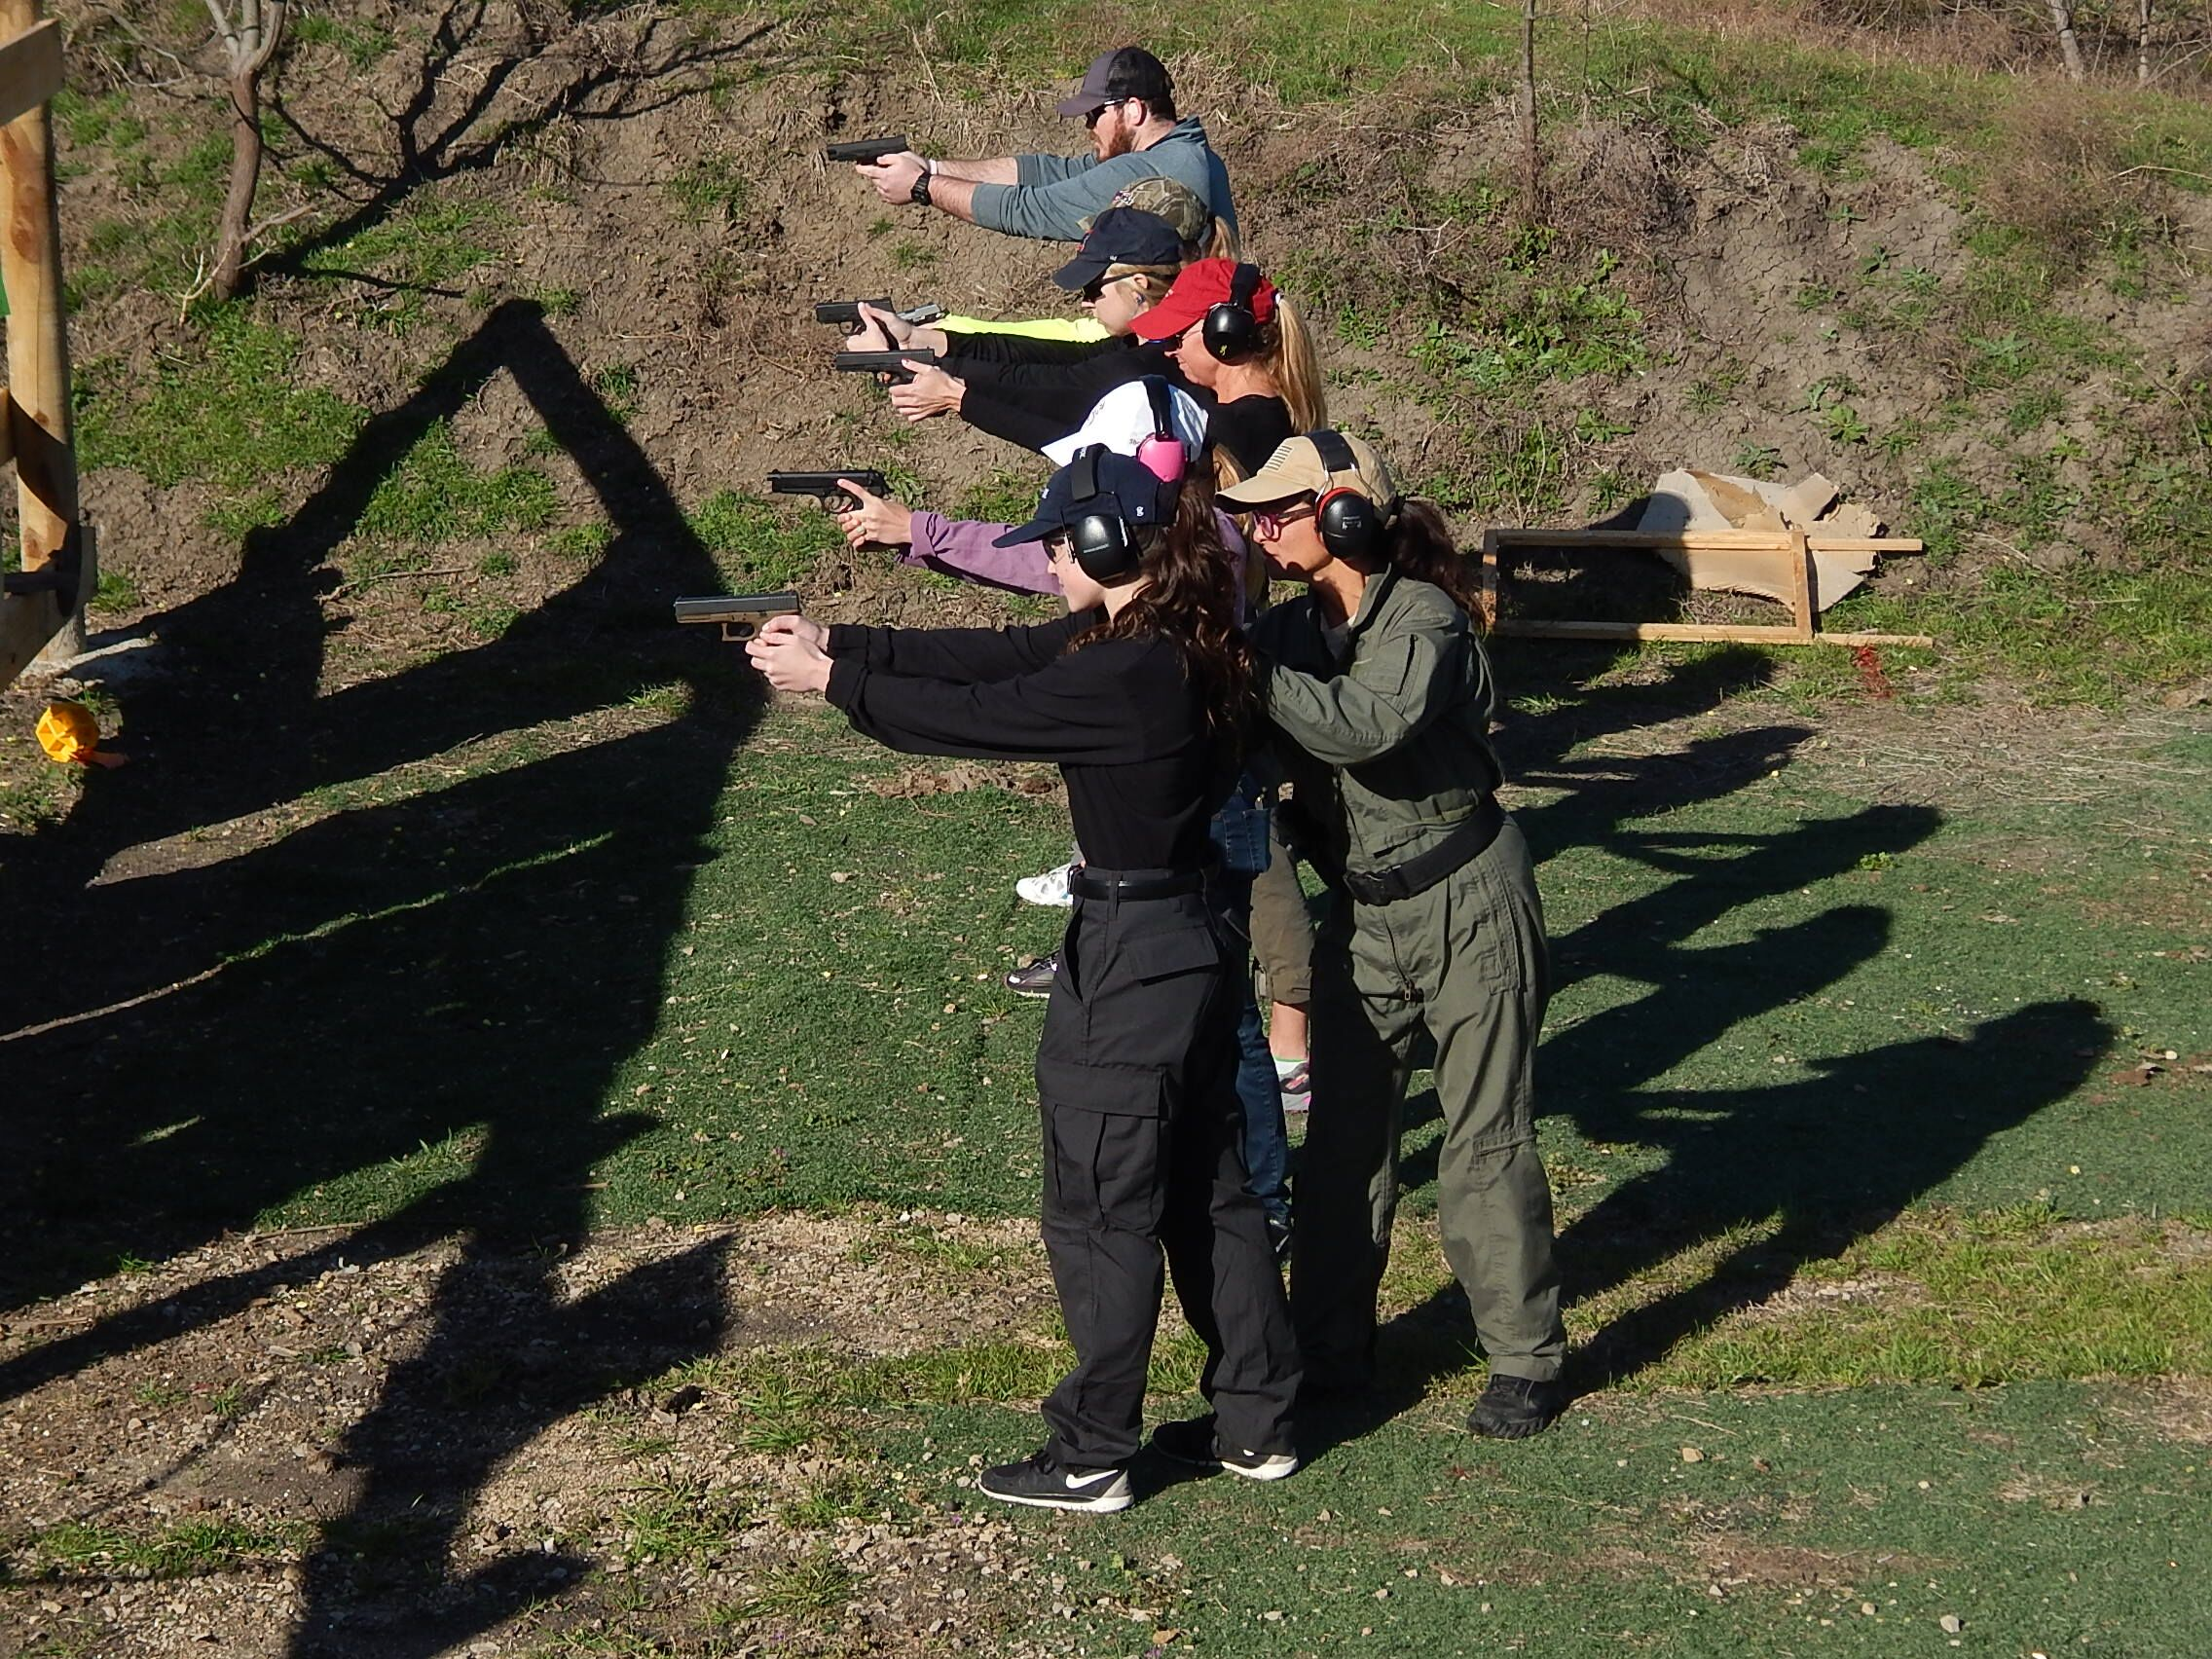 Strap On Your Holsters And Sight In Those Guns This Class Combines